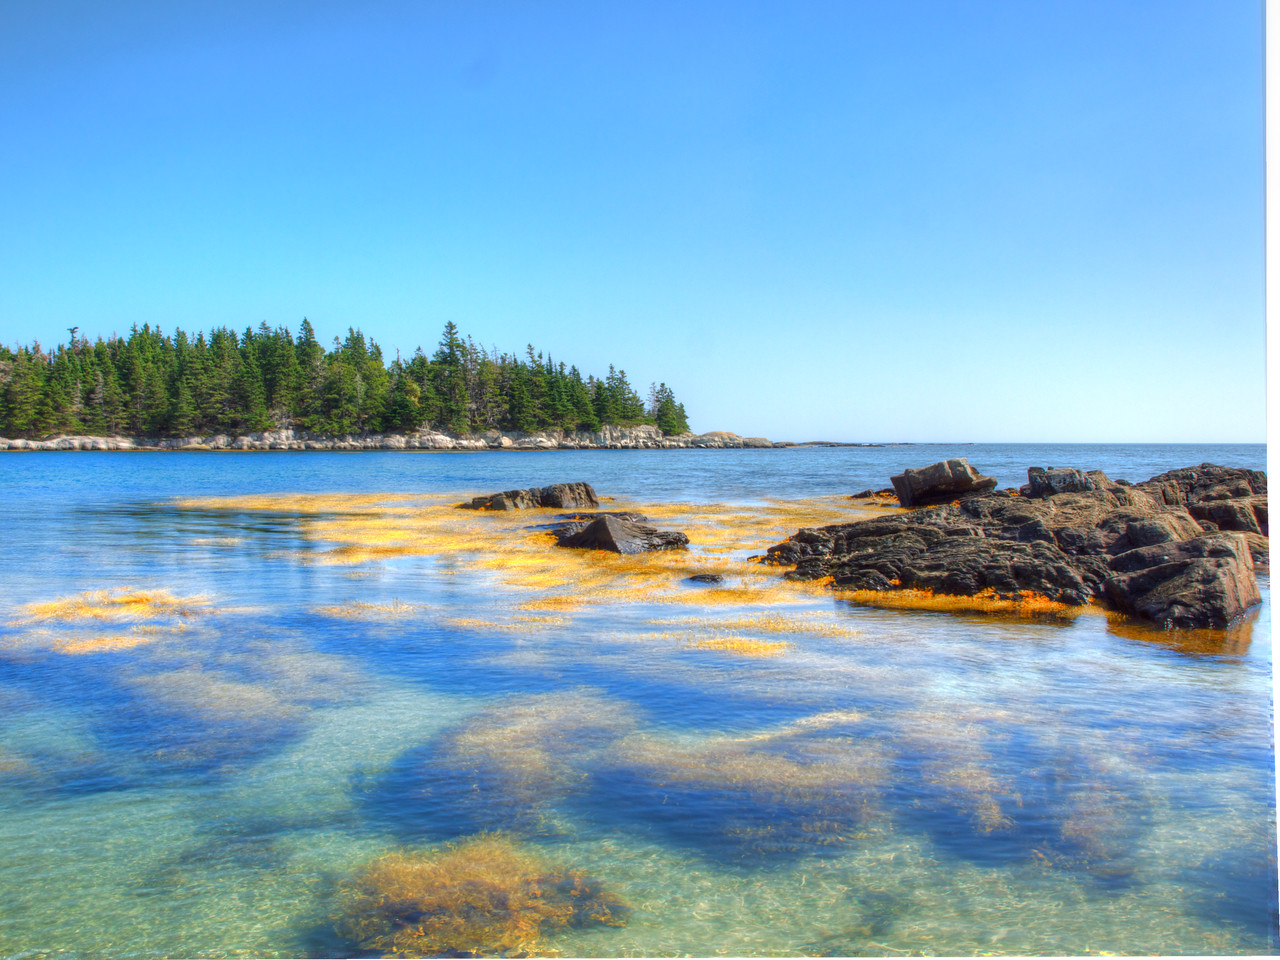 Outer Island